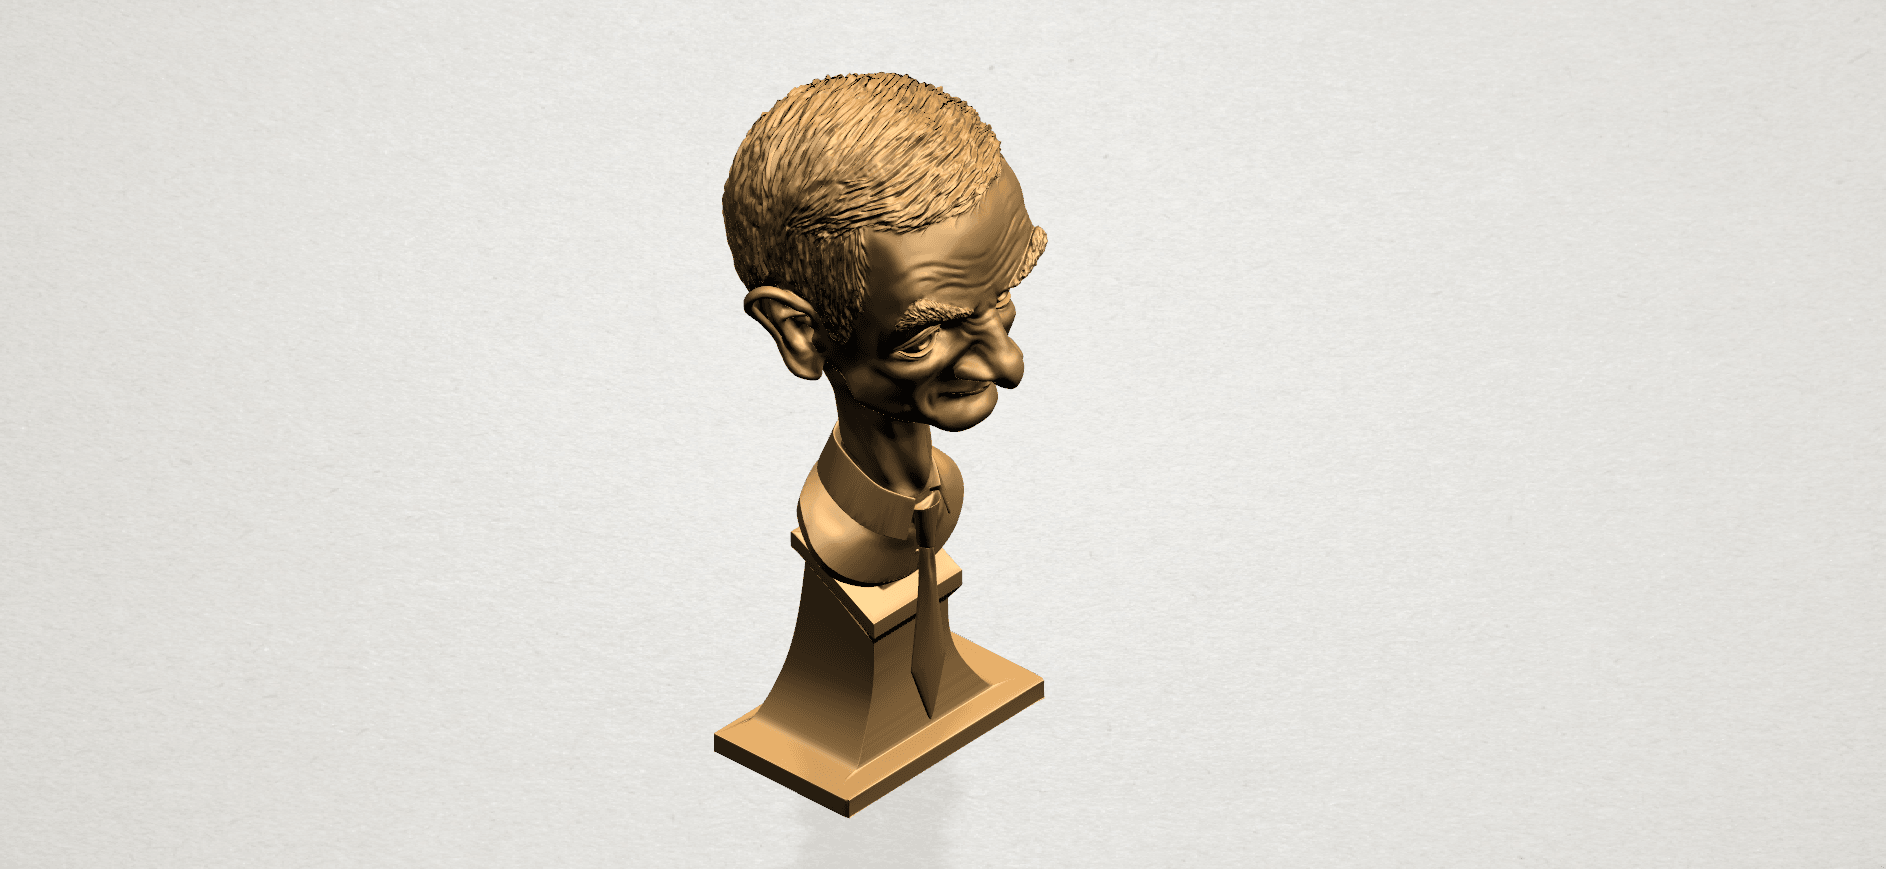 Sculpture of a man - B05.png Download free STL file Sculpture of a man 01 • 3D printable object, GeorgesNikkei